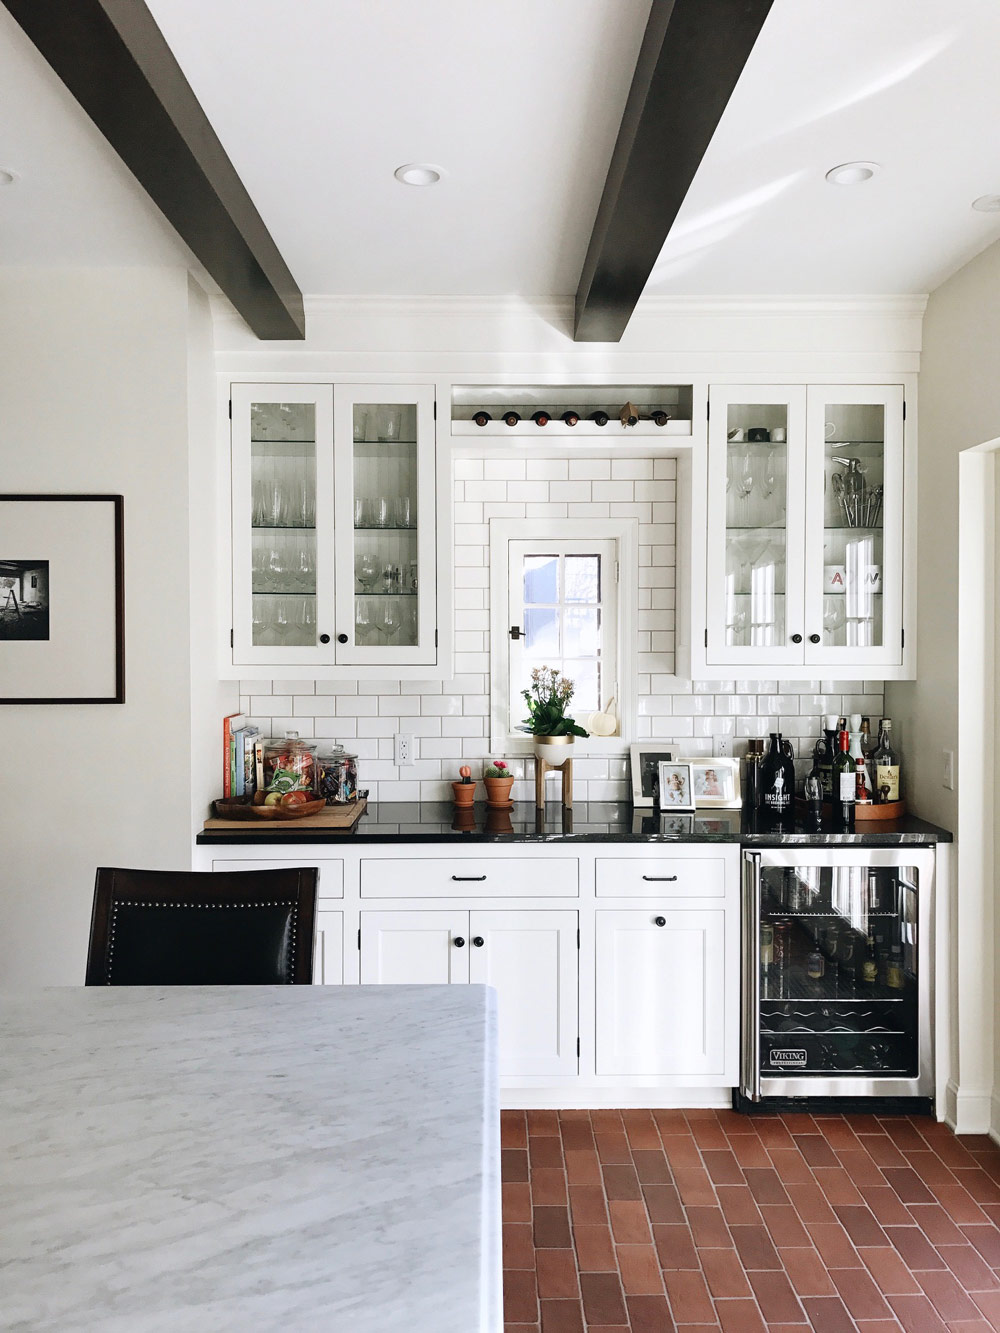 A 1920s Home Built with Charming Architectural Details